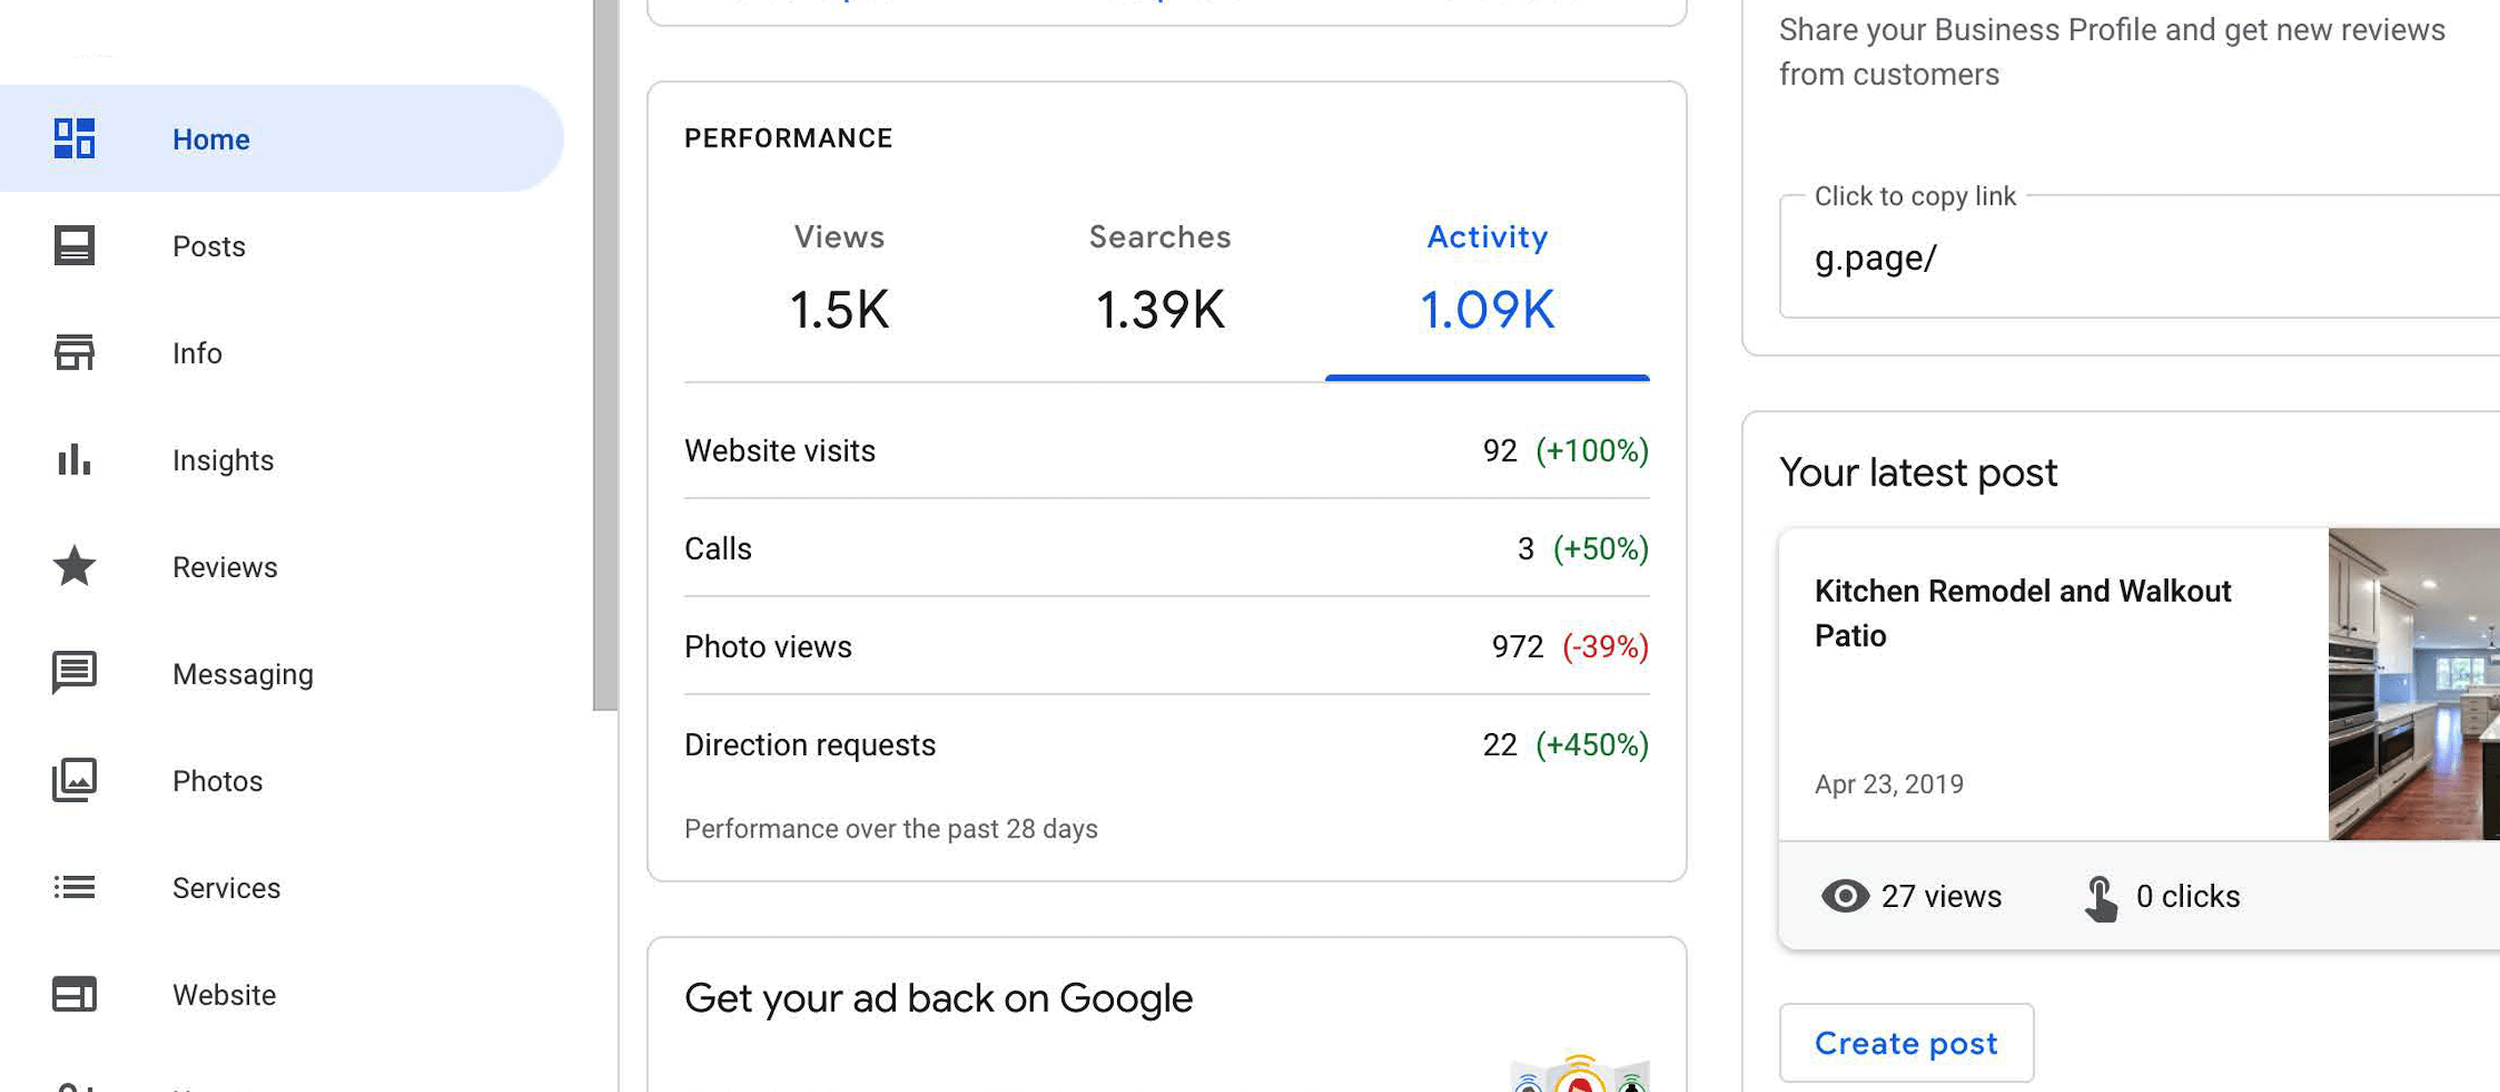 google my business performance insights